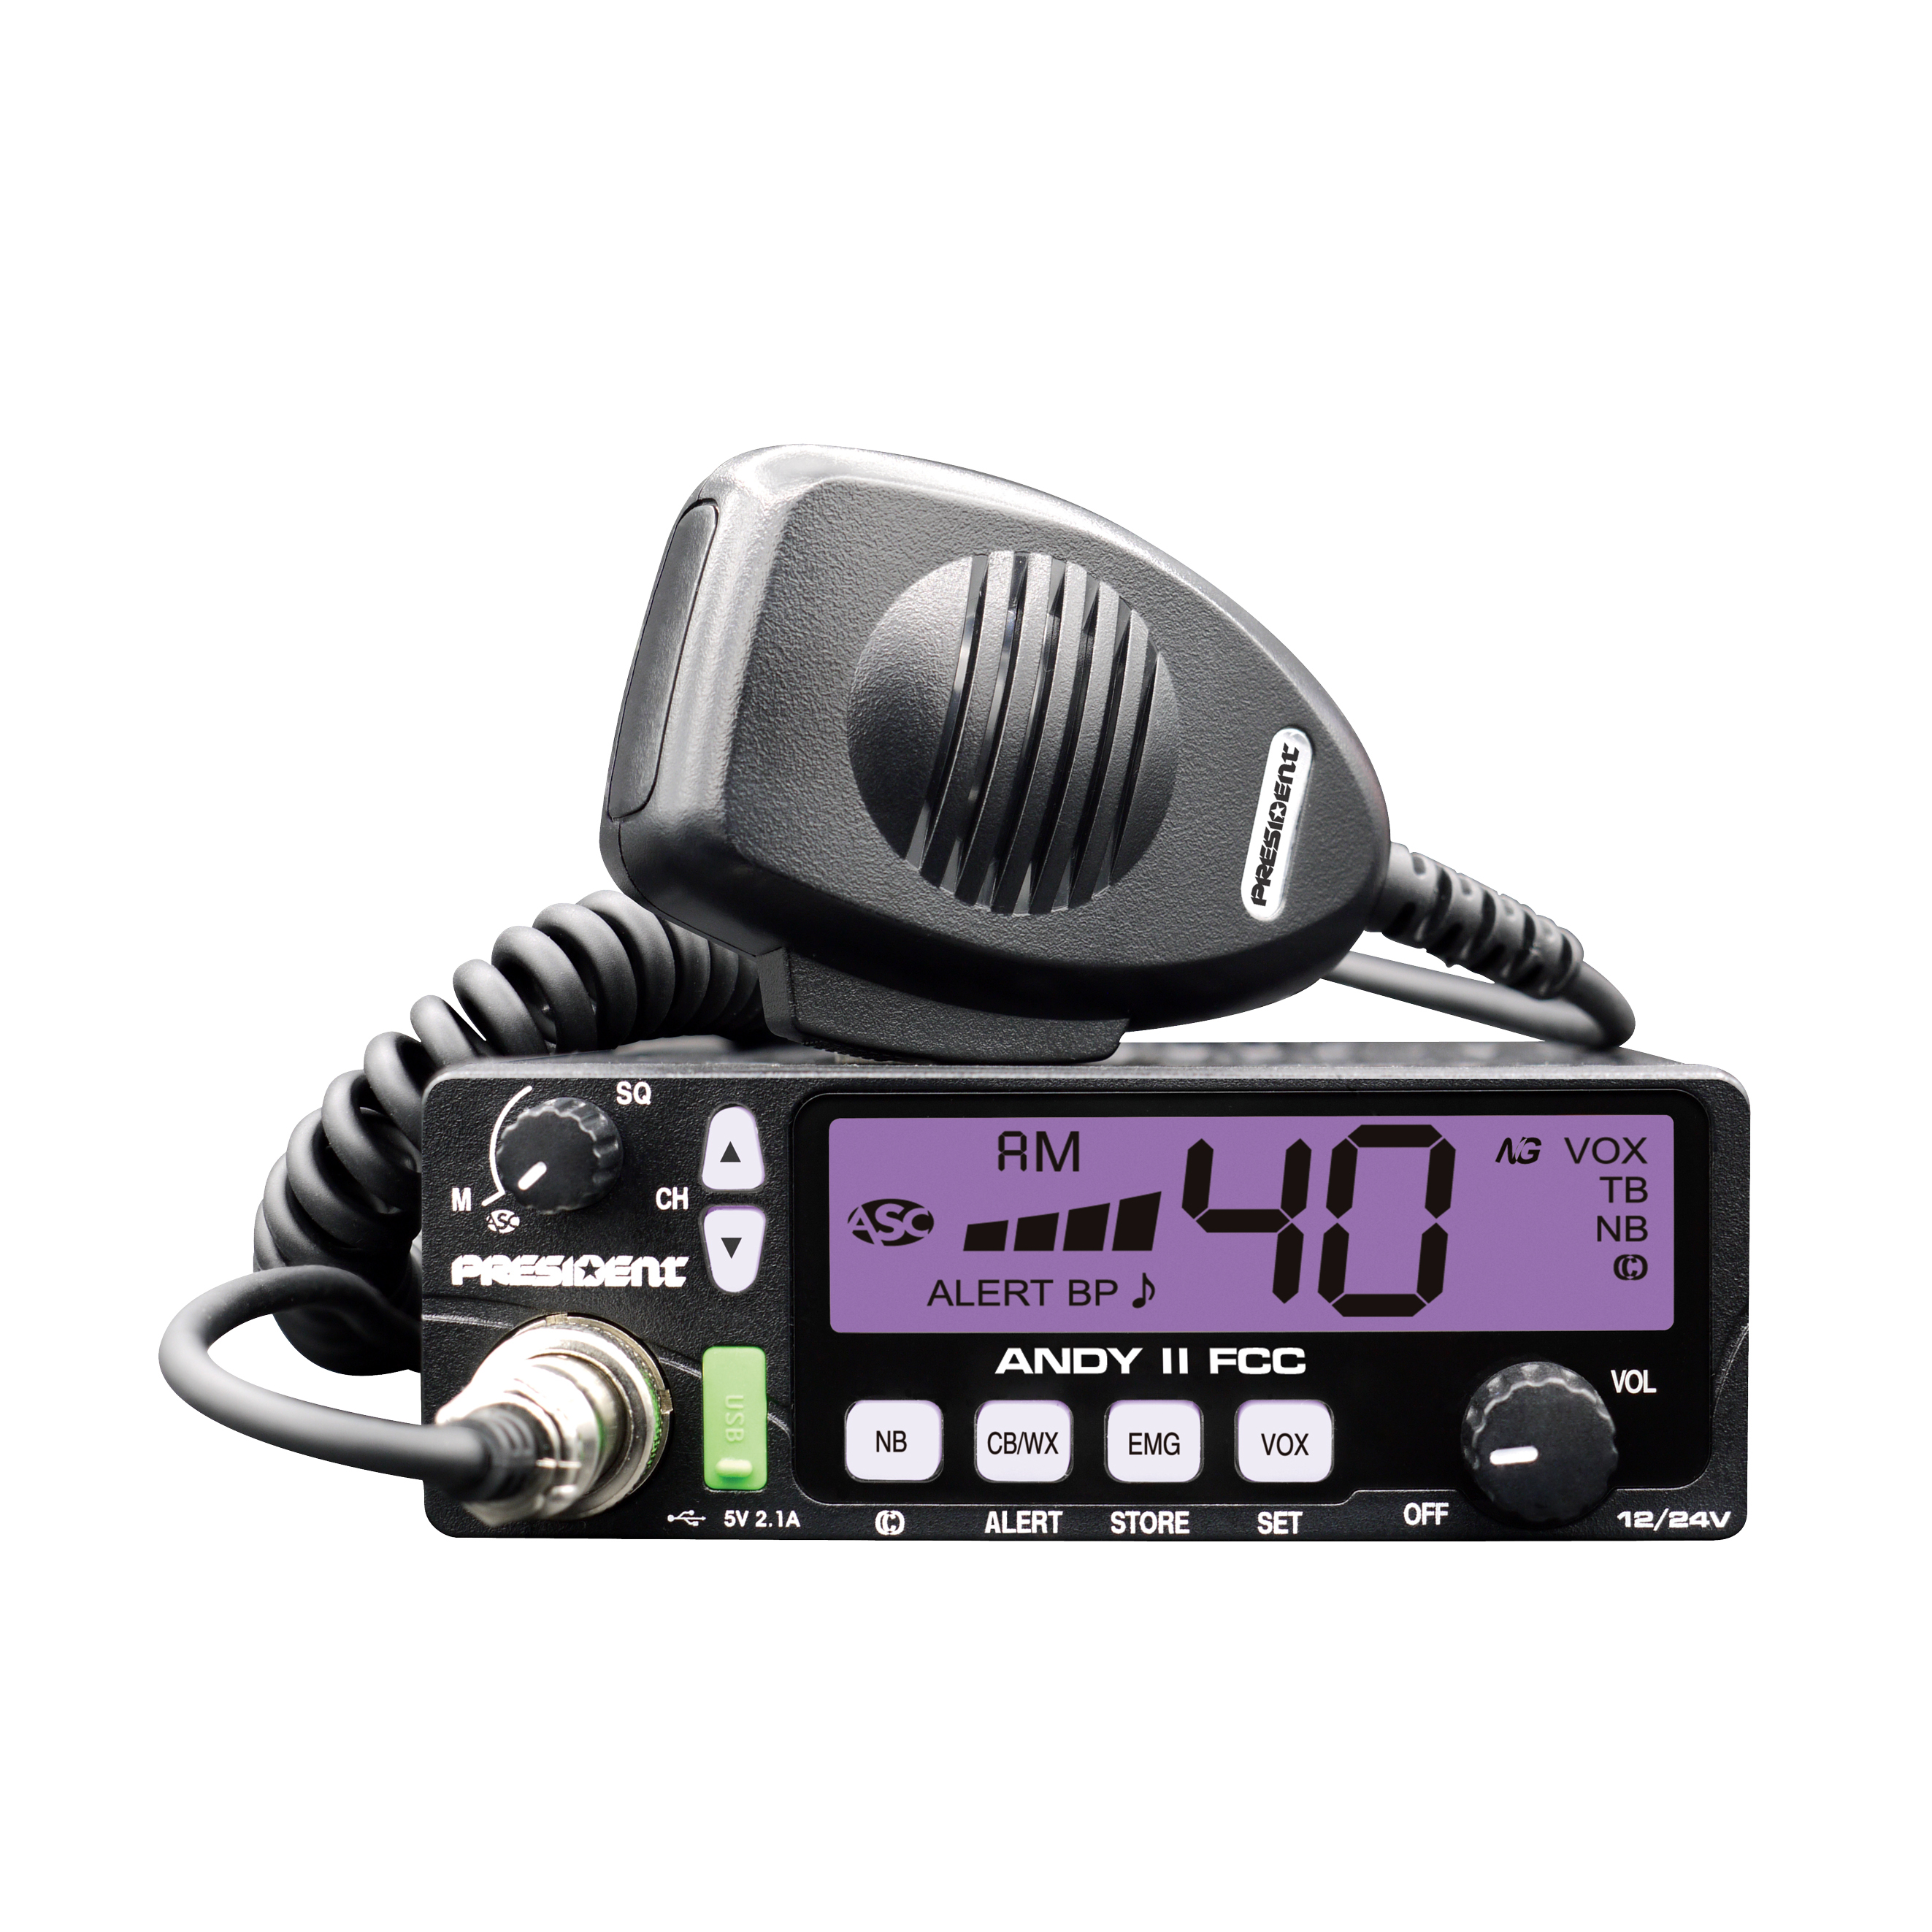 ANDY II - President 12-24 VDC CB Radio with 7 Color Display